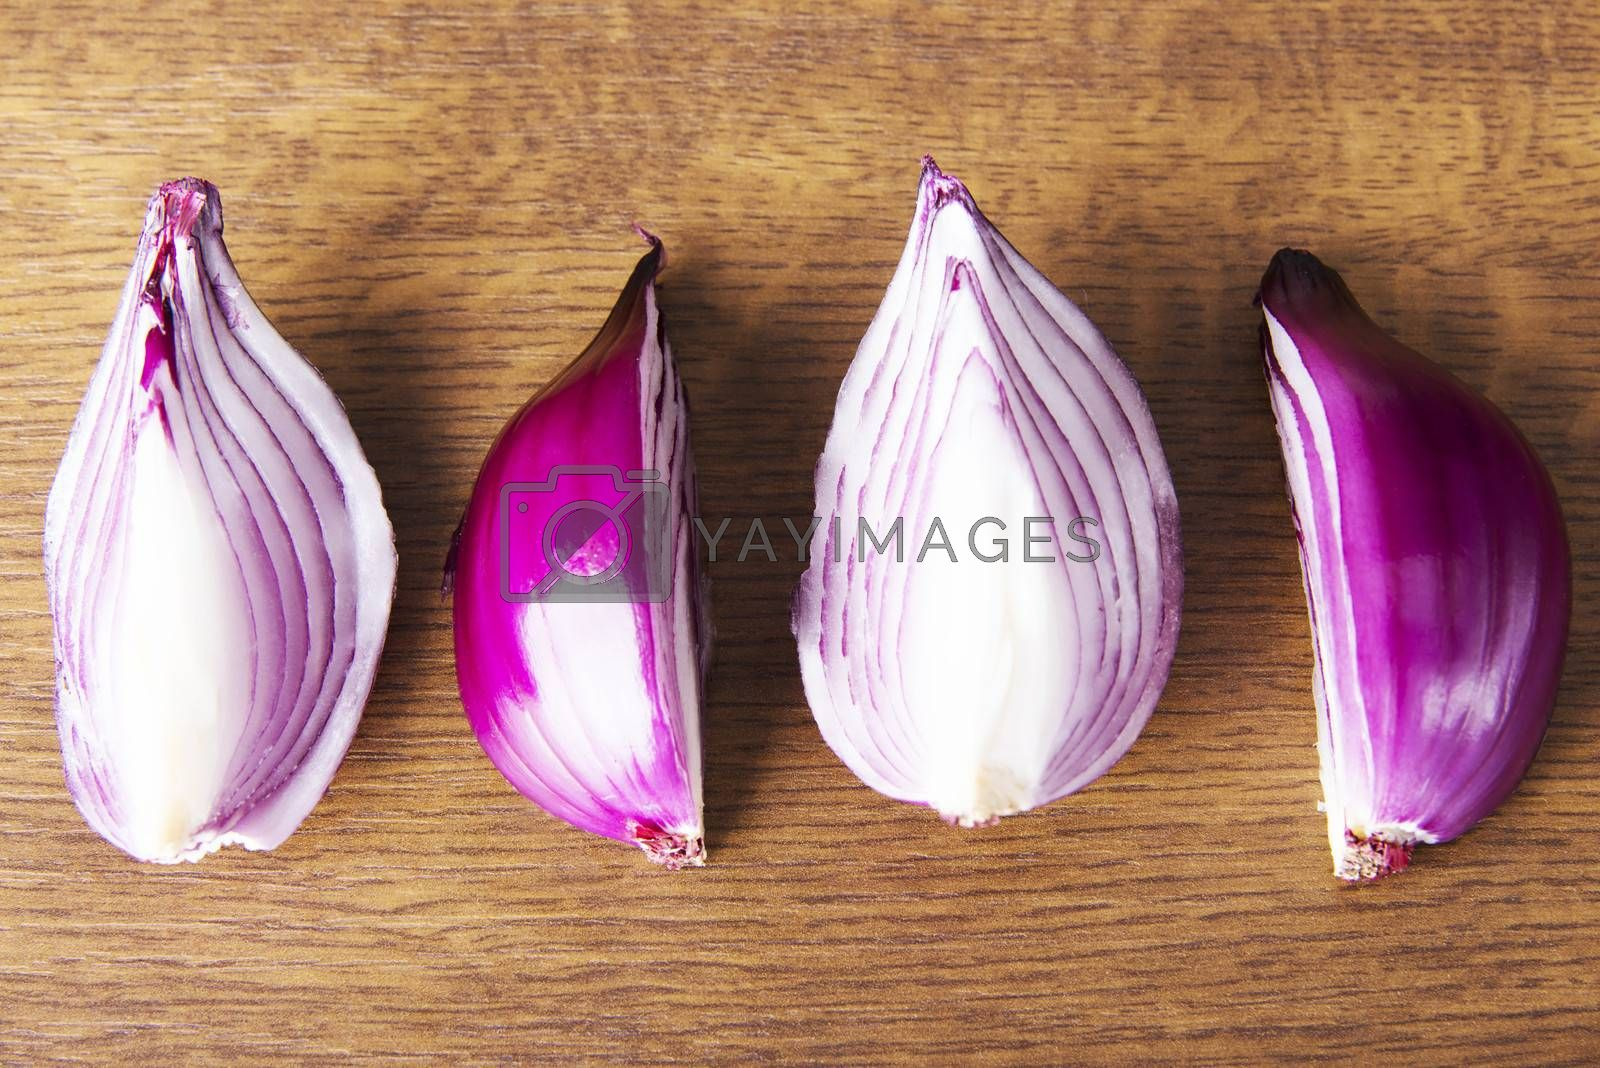 Composition of red onions. Over wooden background.